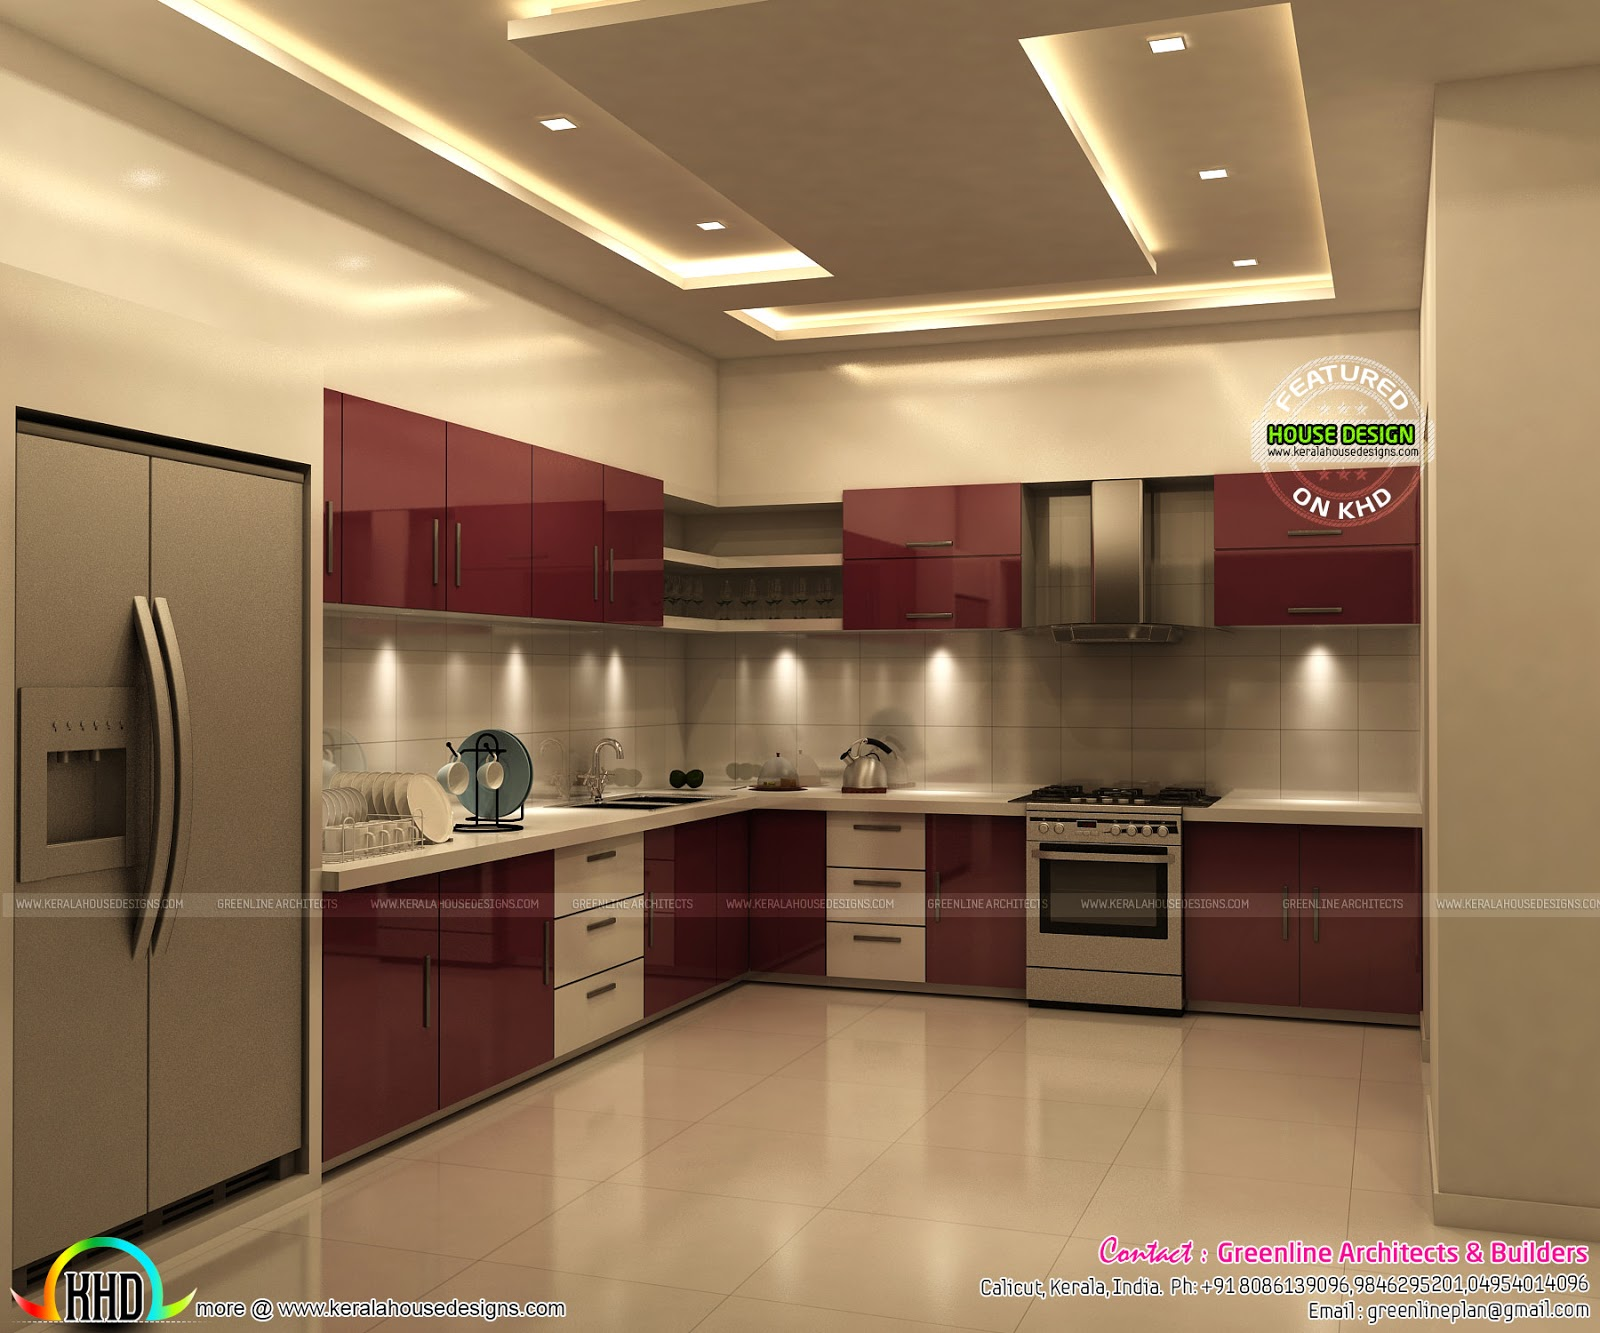 Superb kitchen and bedroom interiors kerala home design and floor plans - Interior design kitchen ...